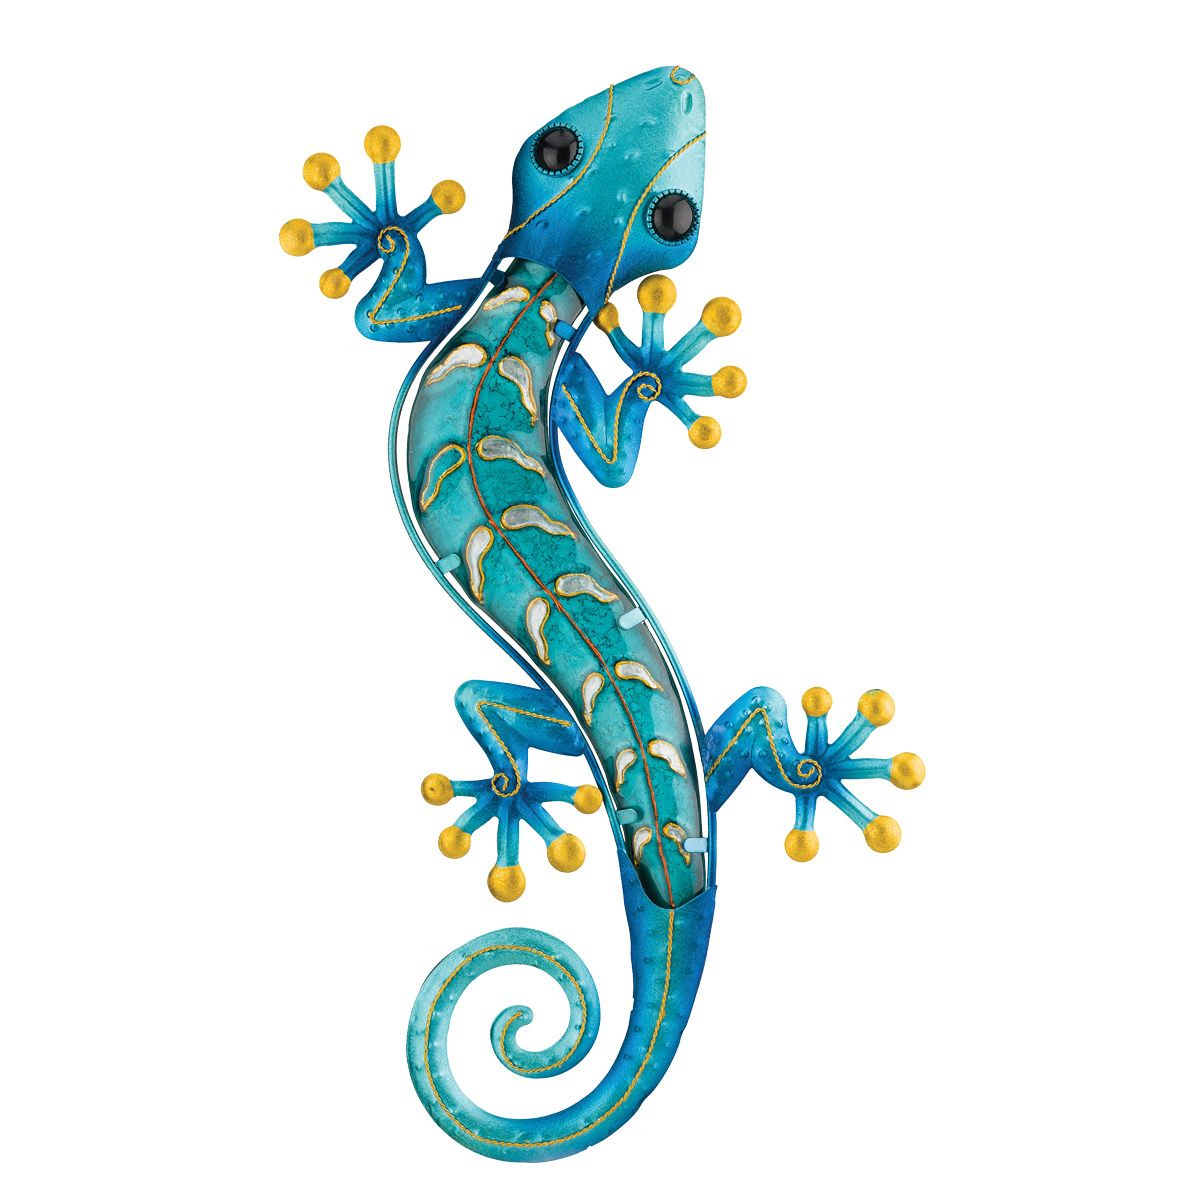 Gecko Wall Decor With Regard To Fashionable Rustic Metal Wall Art: Metal Gecko Wall Art – Blue (Gallery 3 of 20)